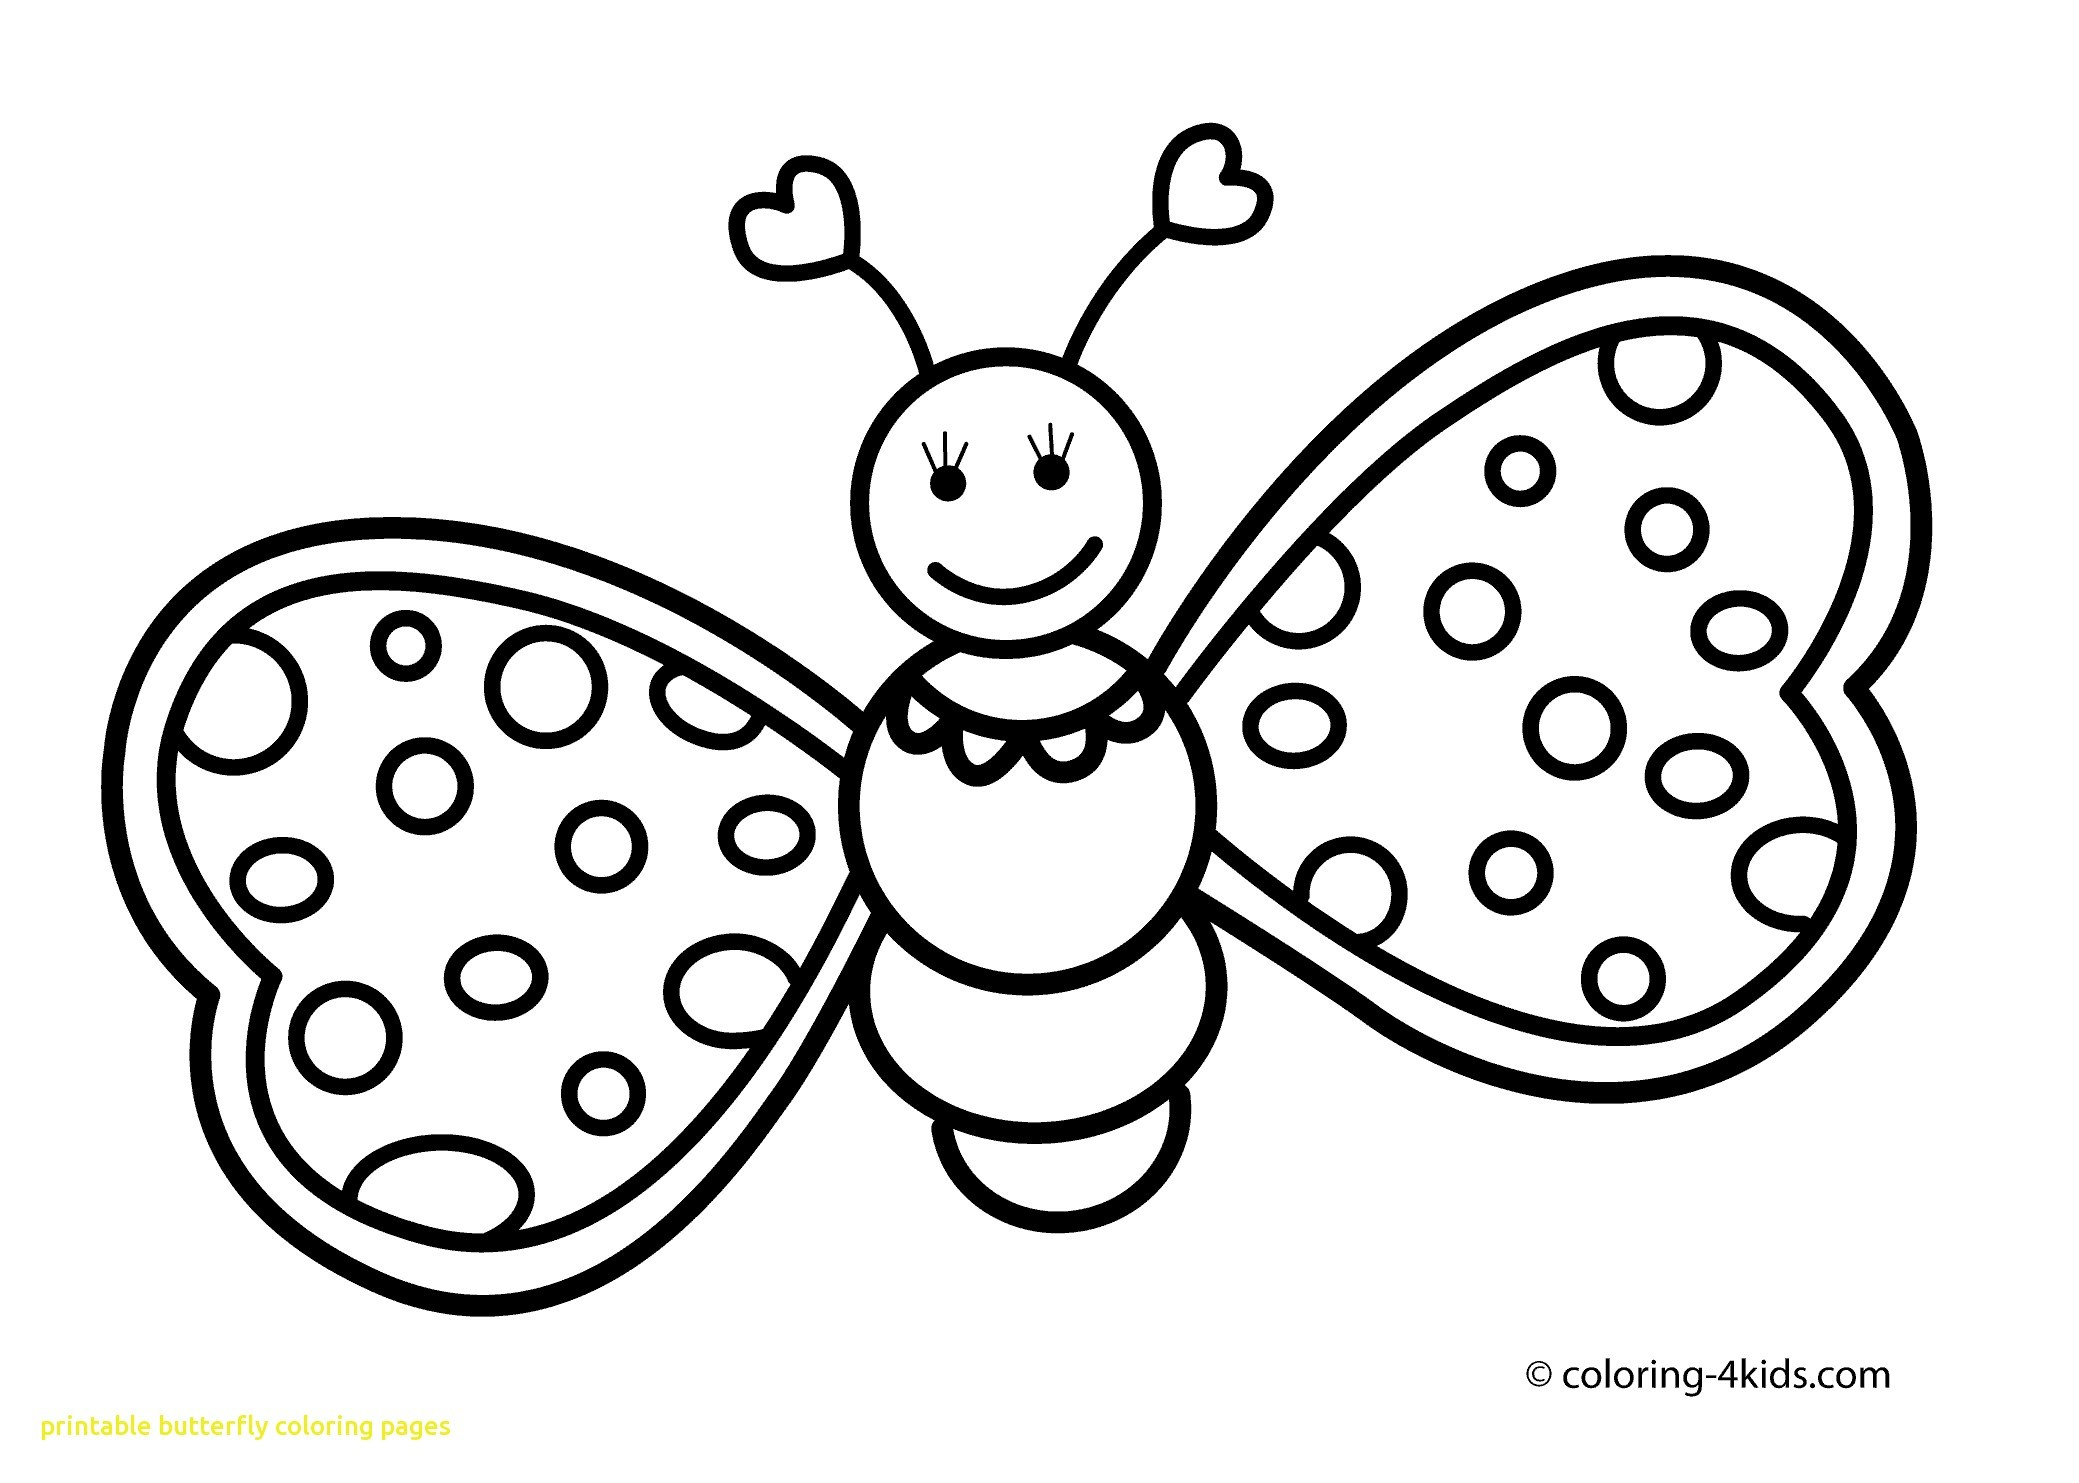 2079x1483 free printable butterfly coloring pages butterflies color